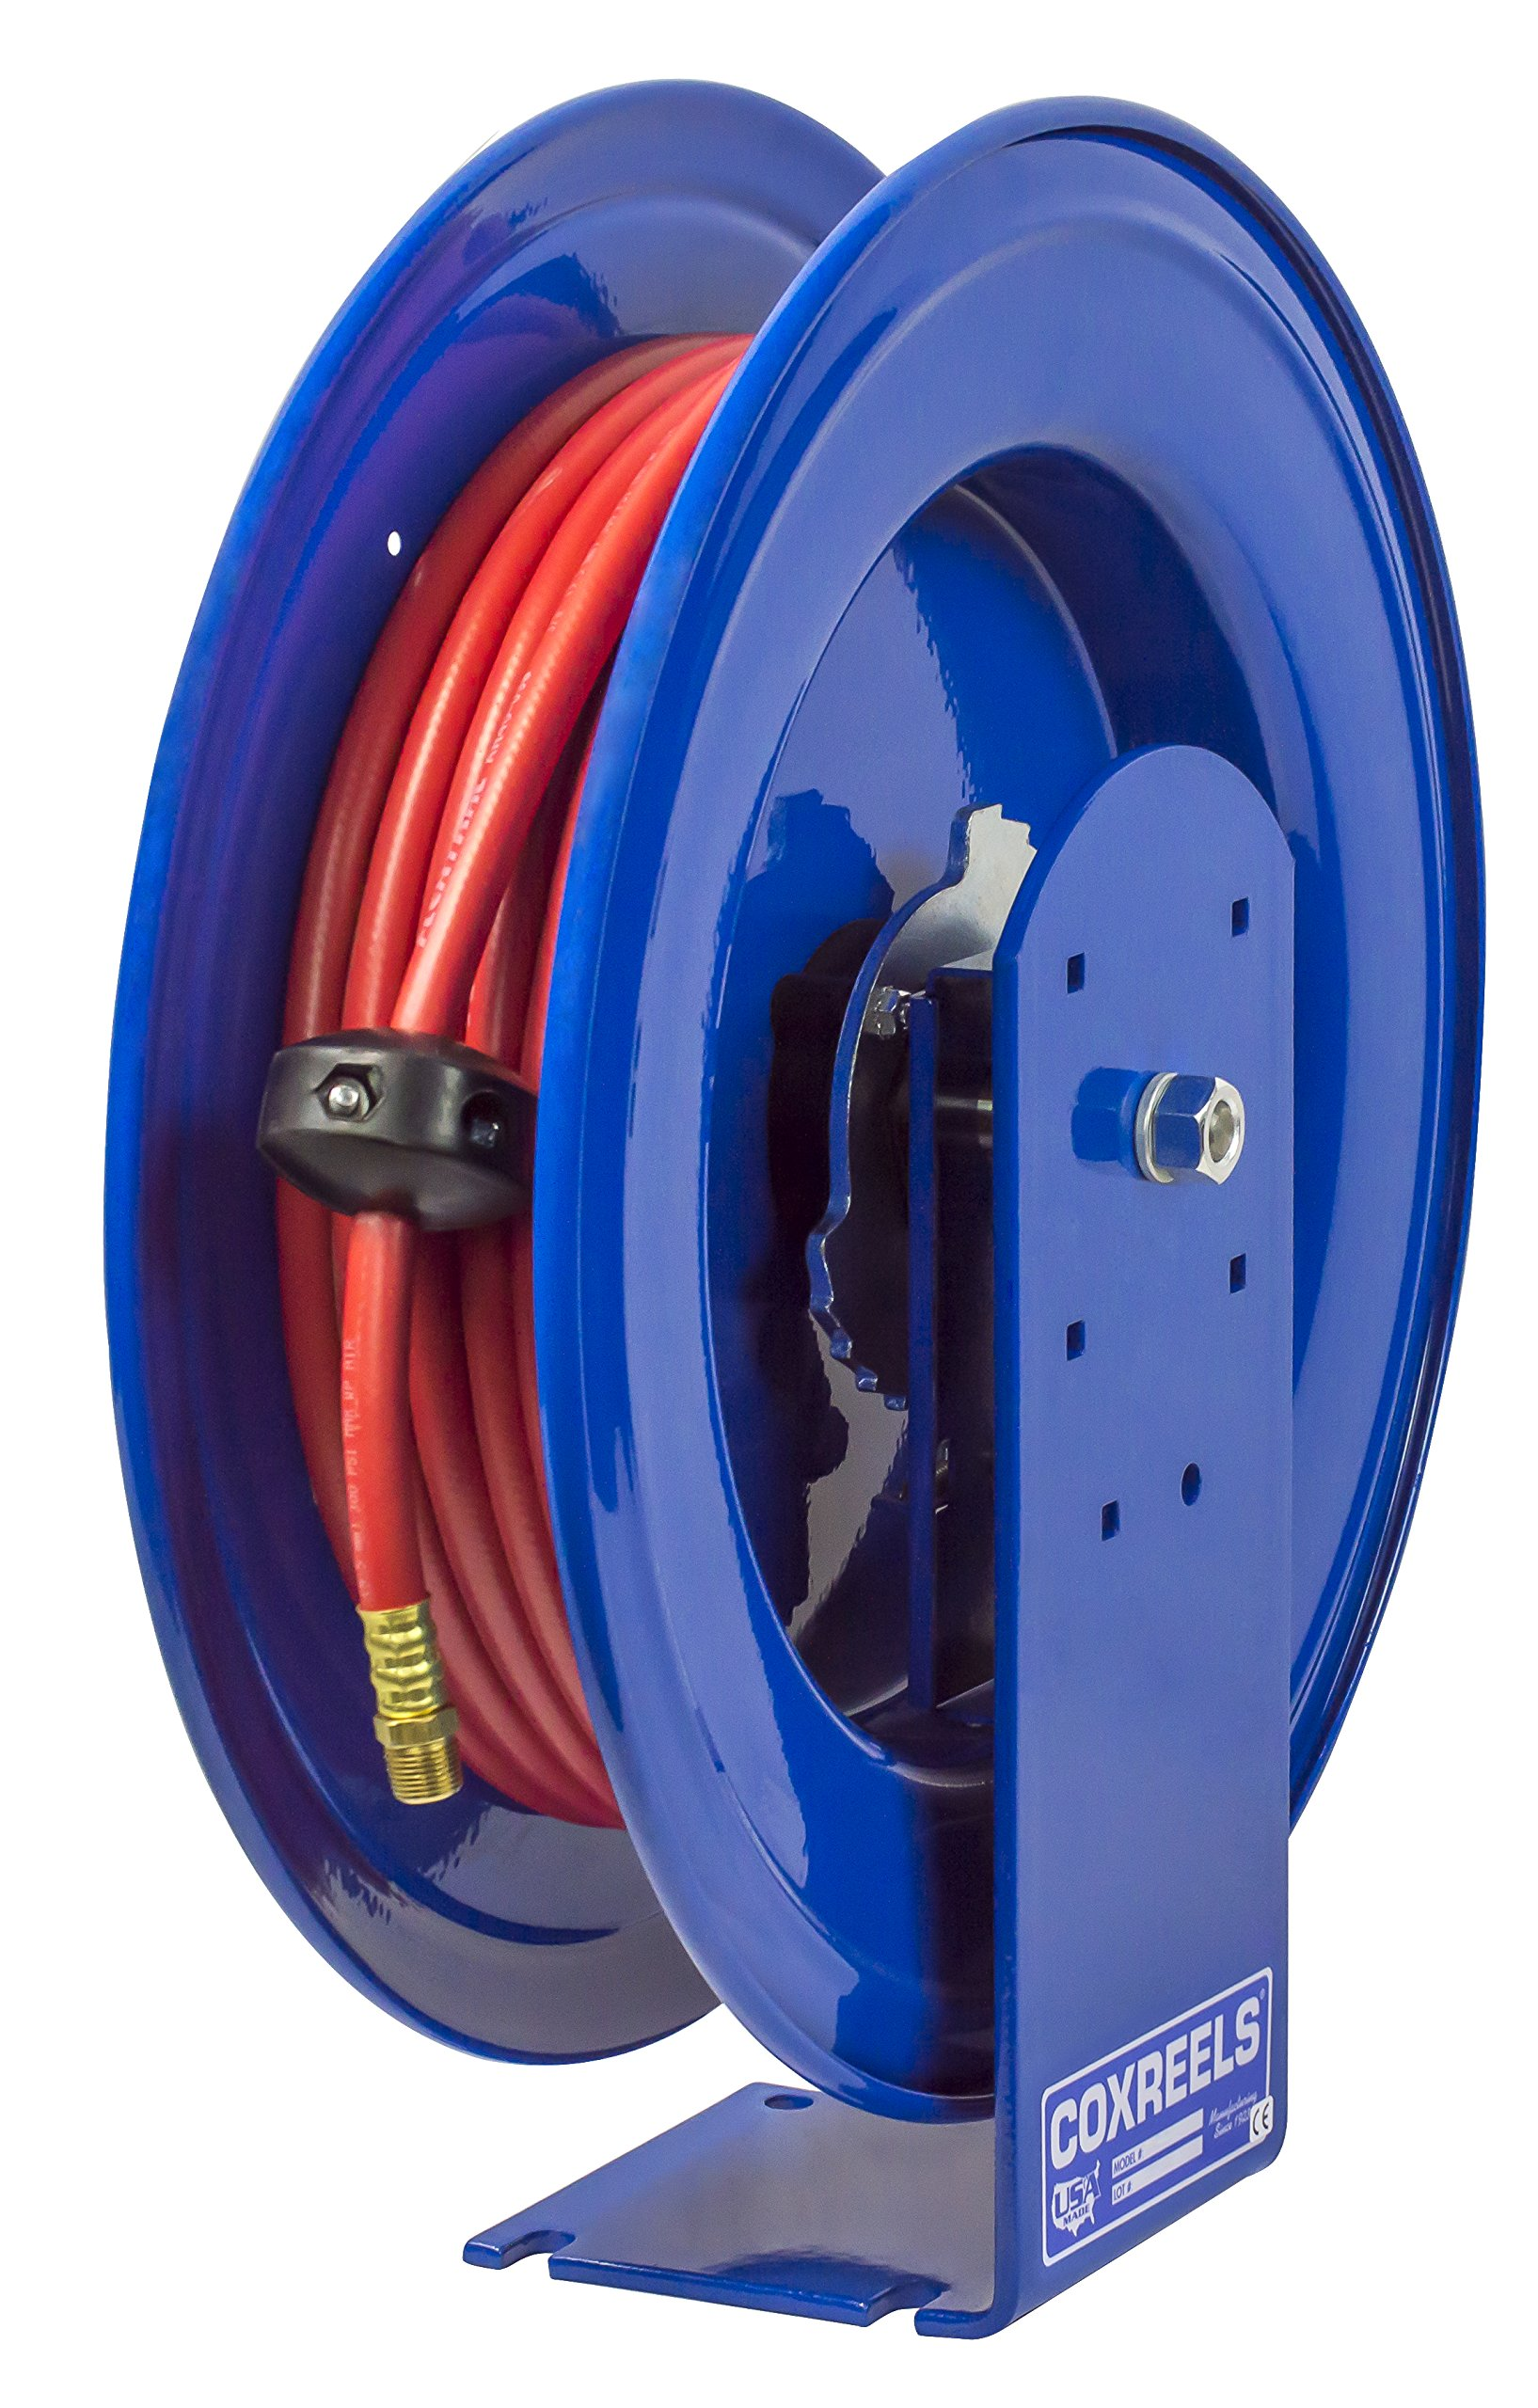 Coxreels EZ-E-LP-430 Safety Series Spring Rewind Hose Reel for air/water: 1/2'' I.D., 30' hose capacity,  300 PSI